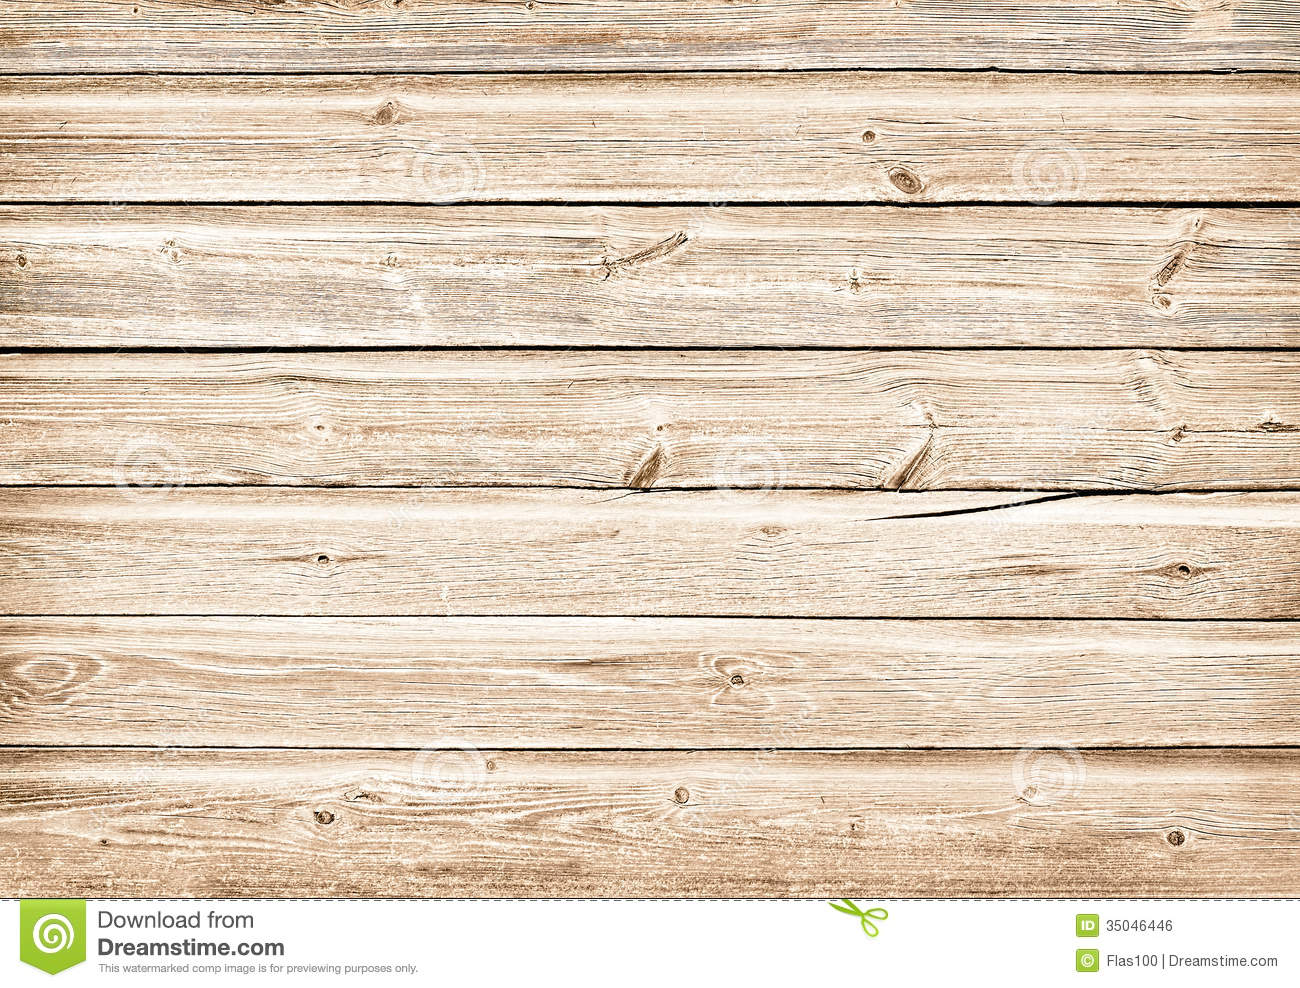 Wood texture wooden plank - Grungy Wooden Planks Texture